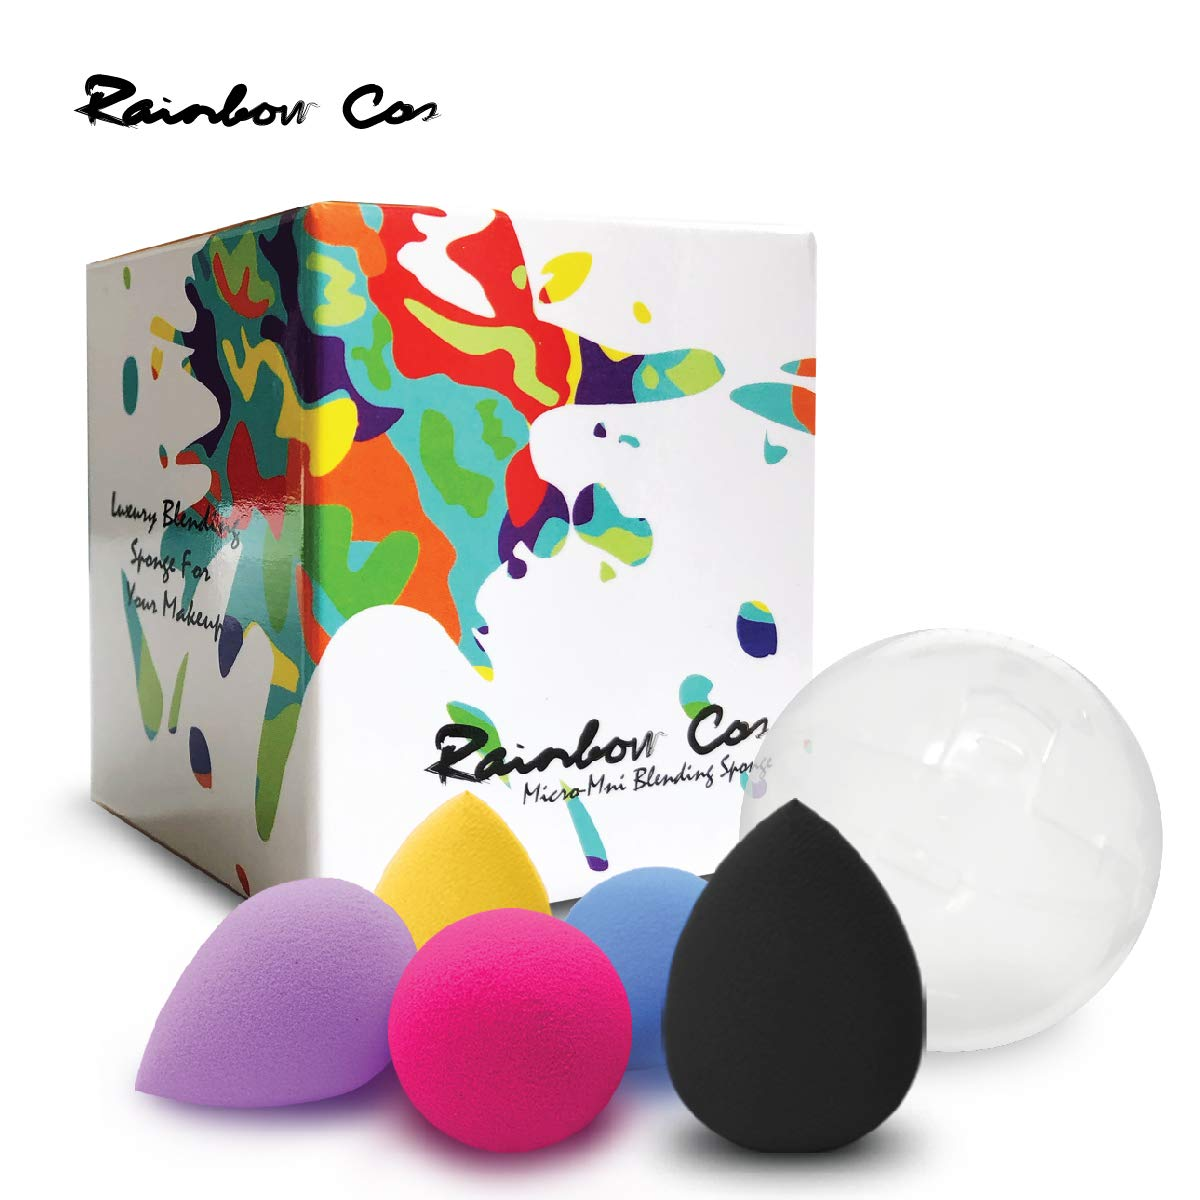 Rainbow Cos 5 PCS Micro Mini Makeup Blender Beauty Sponge set, Foundation Blending Sponge,Flawless for Liquid, Creams, and Powders,Multi Color Makeup Sponges Latex Free.